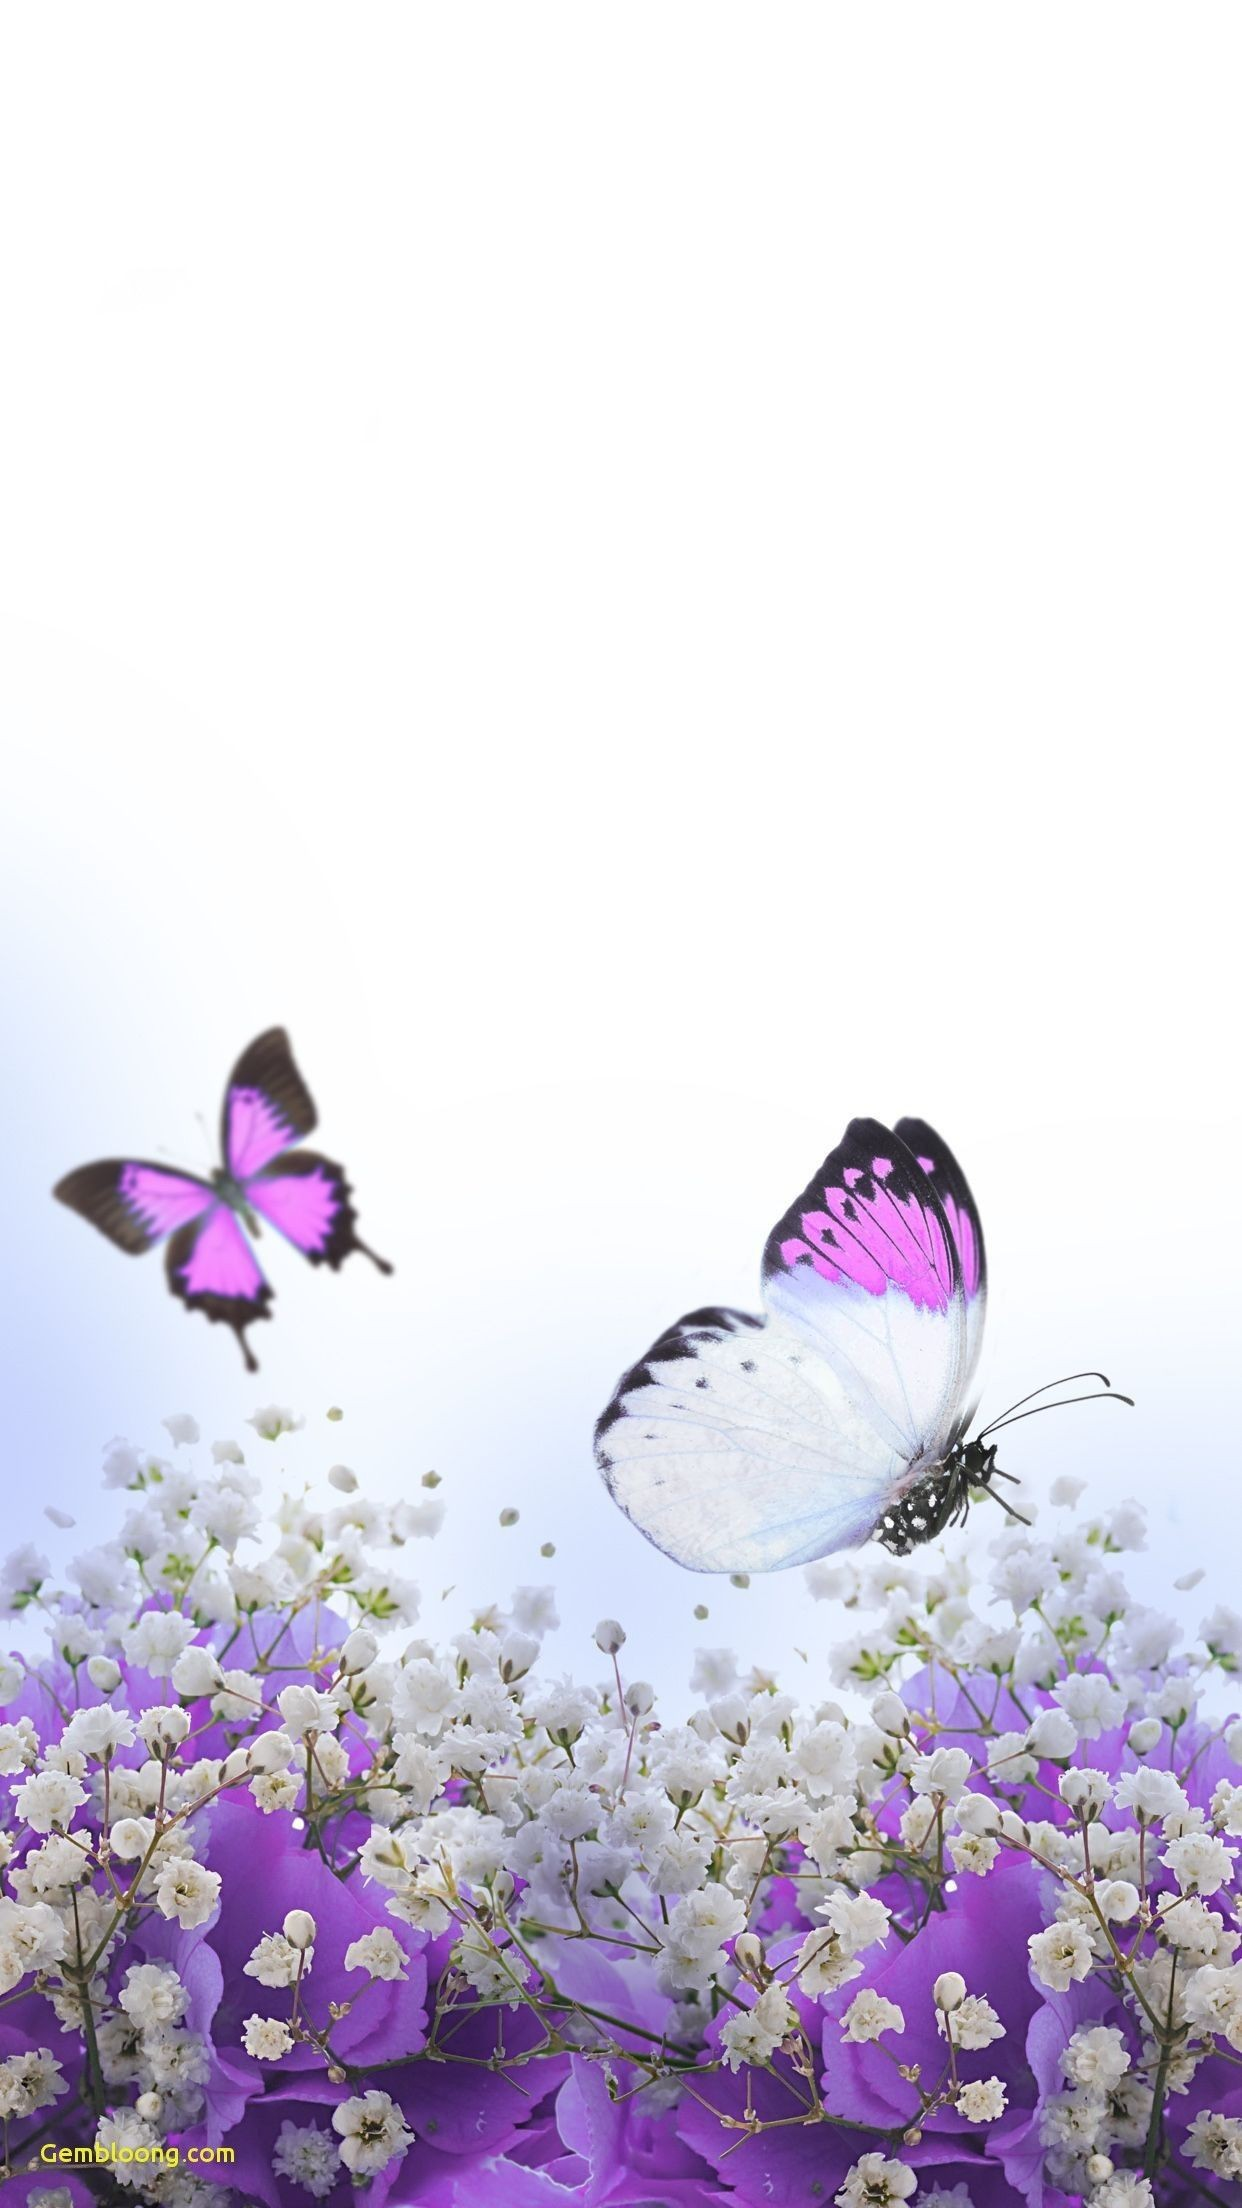 Free Butterfly Backgrounds For Android Lovely Inspirational - Butterfly And Flowers Violet , HD Wallpaper & Backgrounds